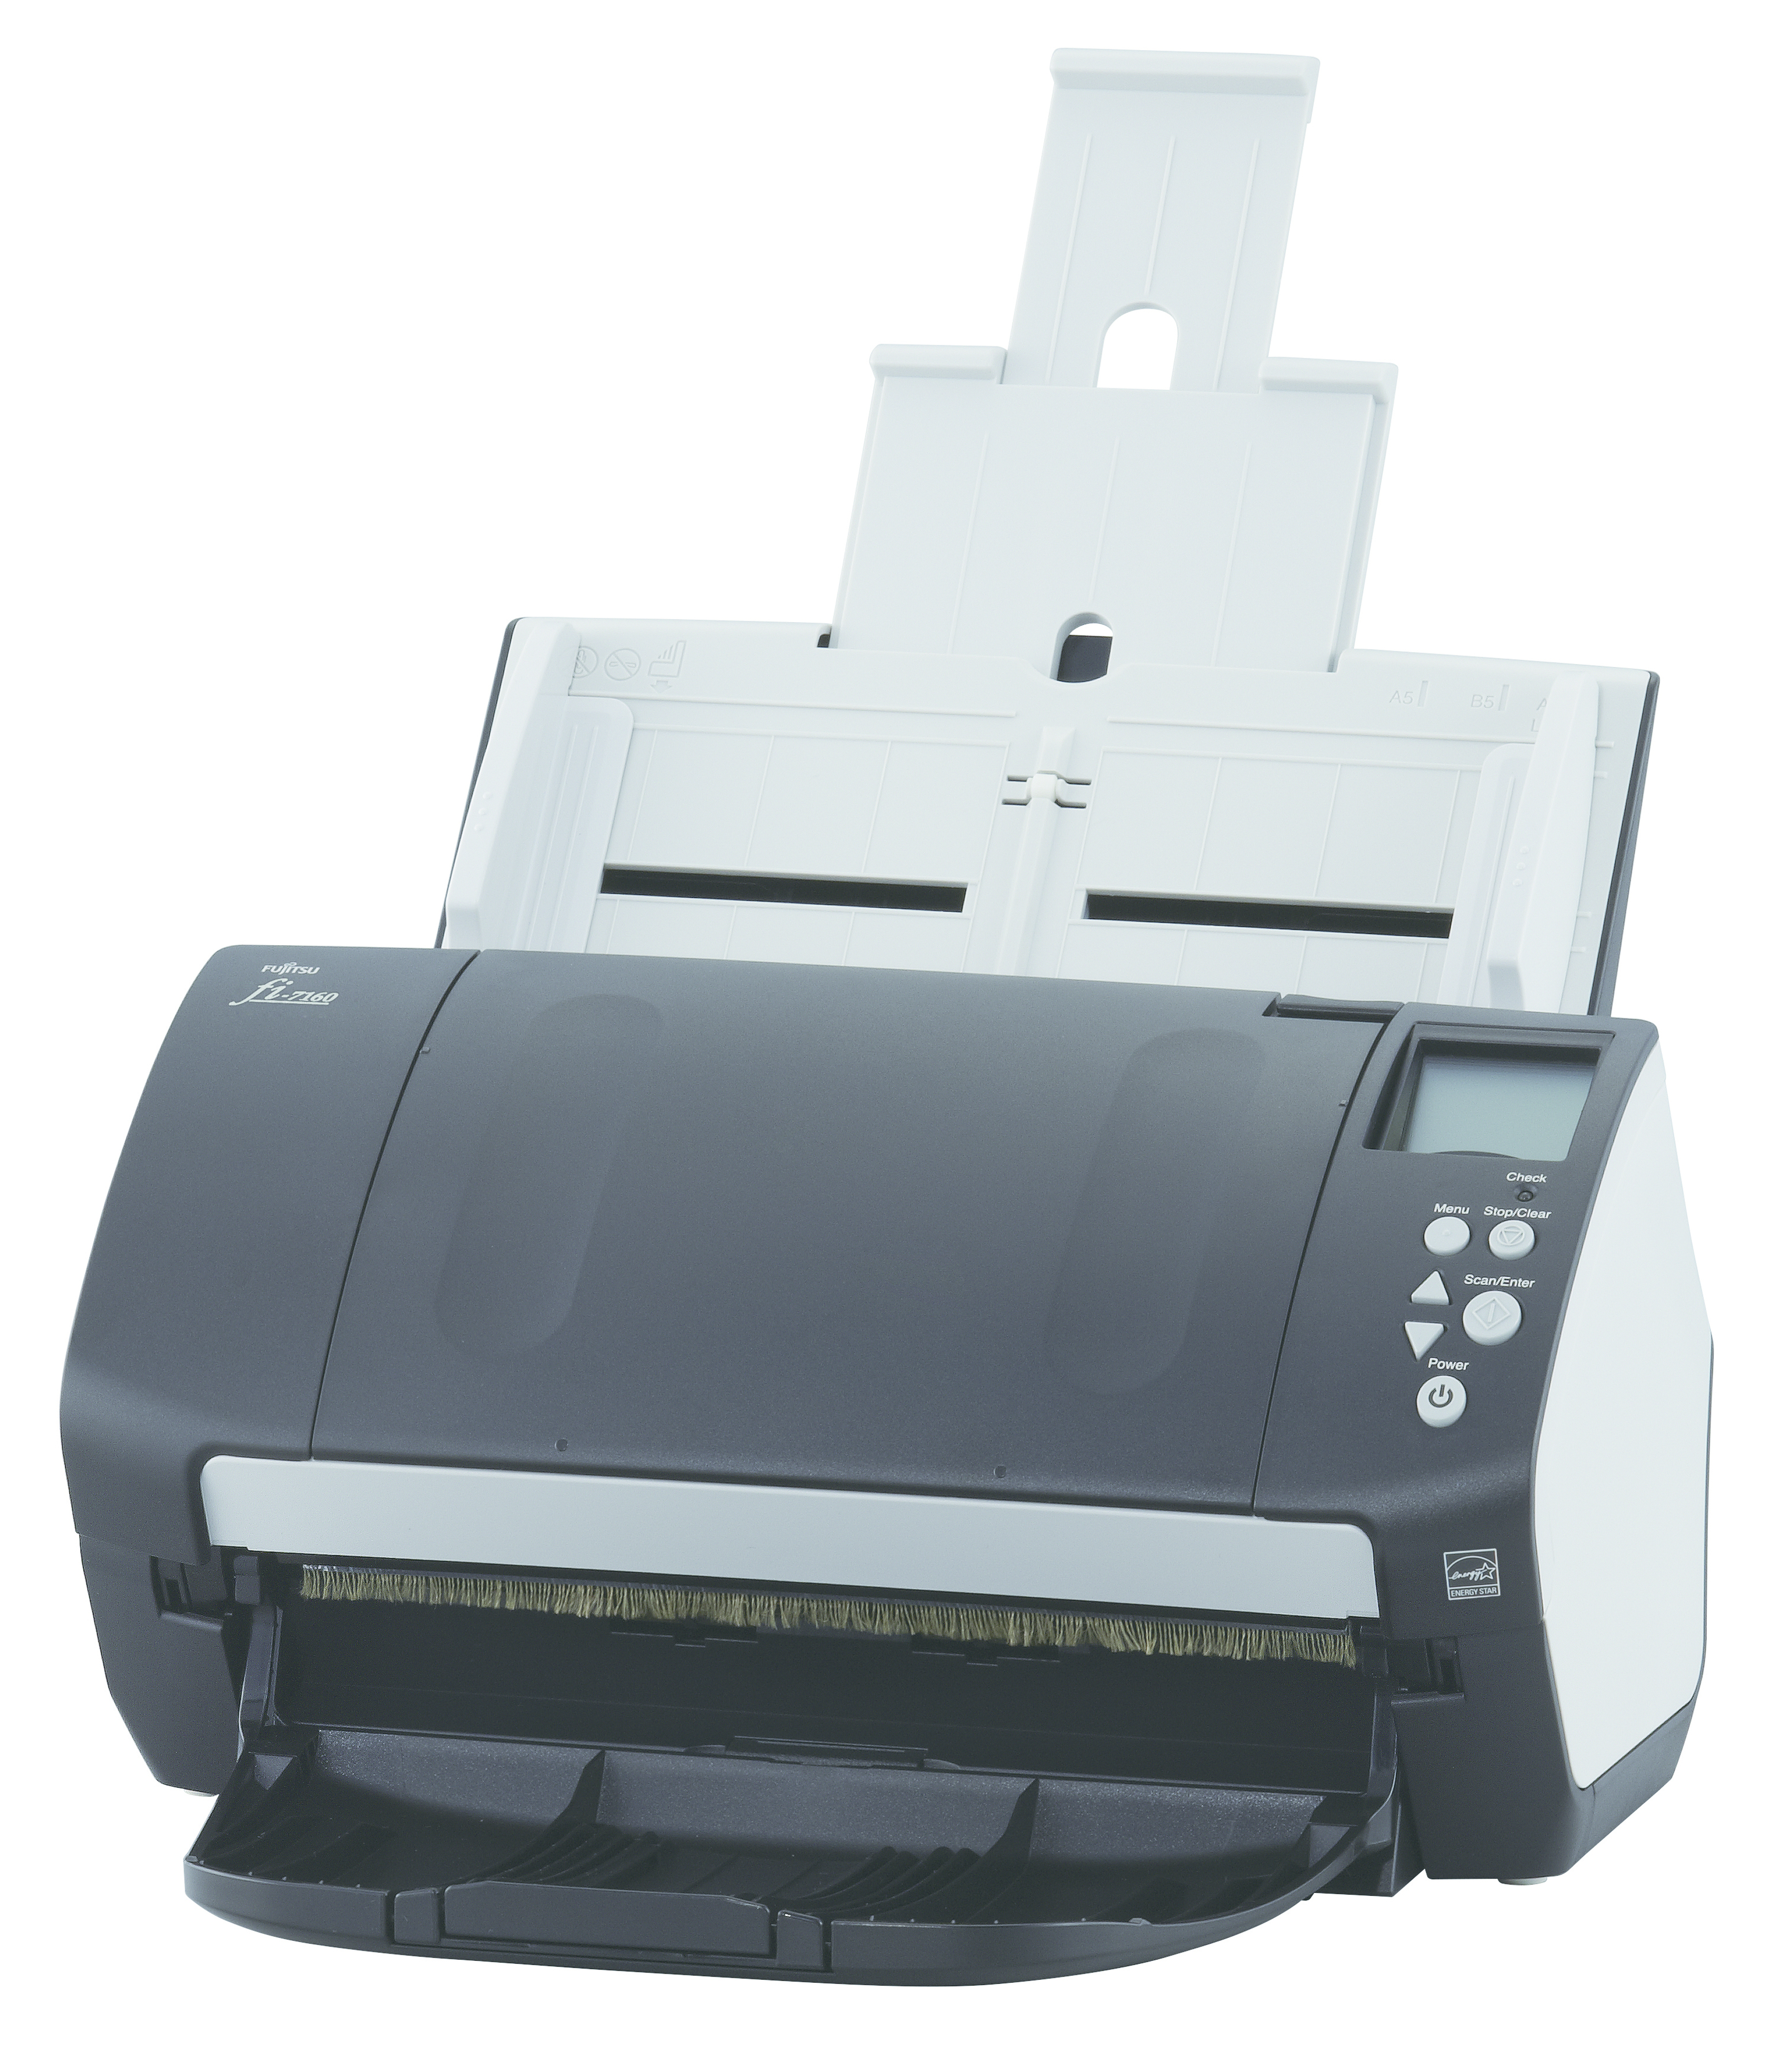 PA03670-B051 Fujitsu FI-7160 Document Scanner Includes PaperStream IP (TWAIN/ISIS) Image Enhancement Solution And PaperStream Capture Batch Scanning Application60 Ppm / 120 Ipm @ 300dpi,  A4  - C2000